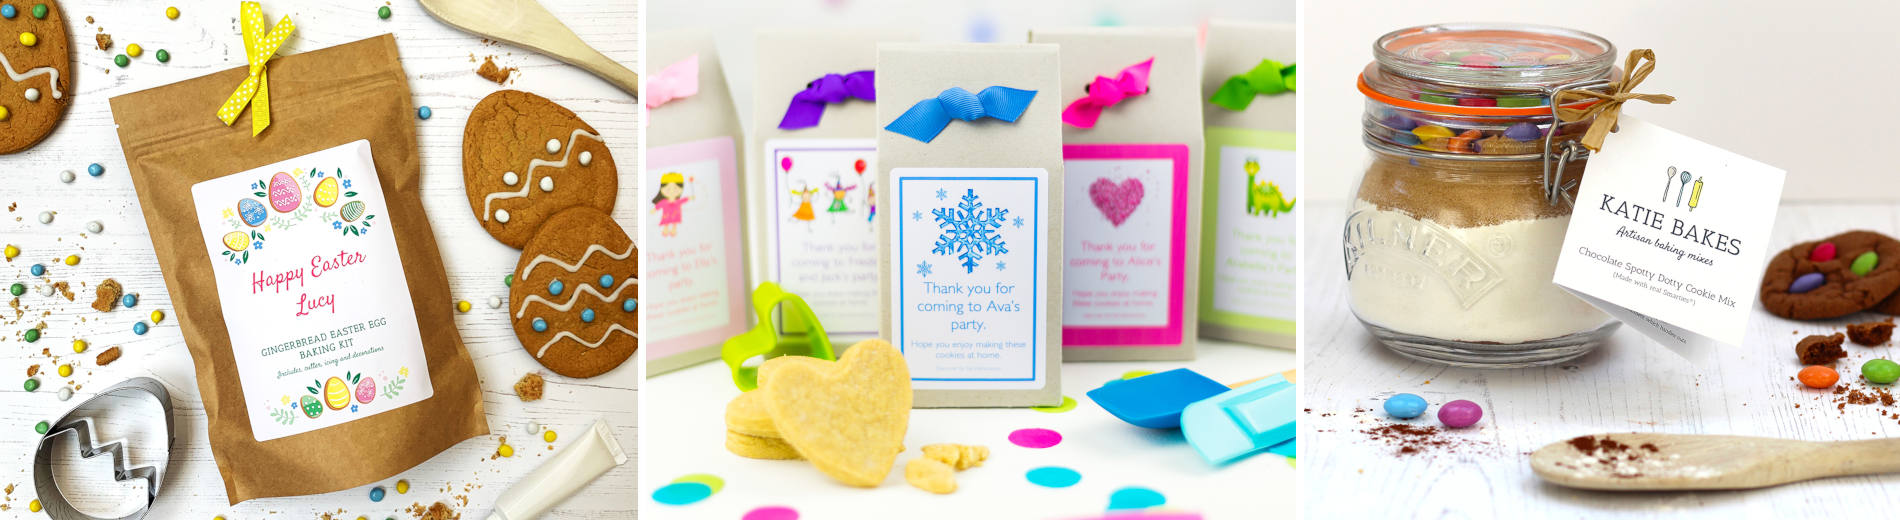 Katie Bakes Artisan Baking Mixes Easter